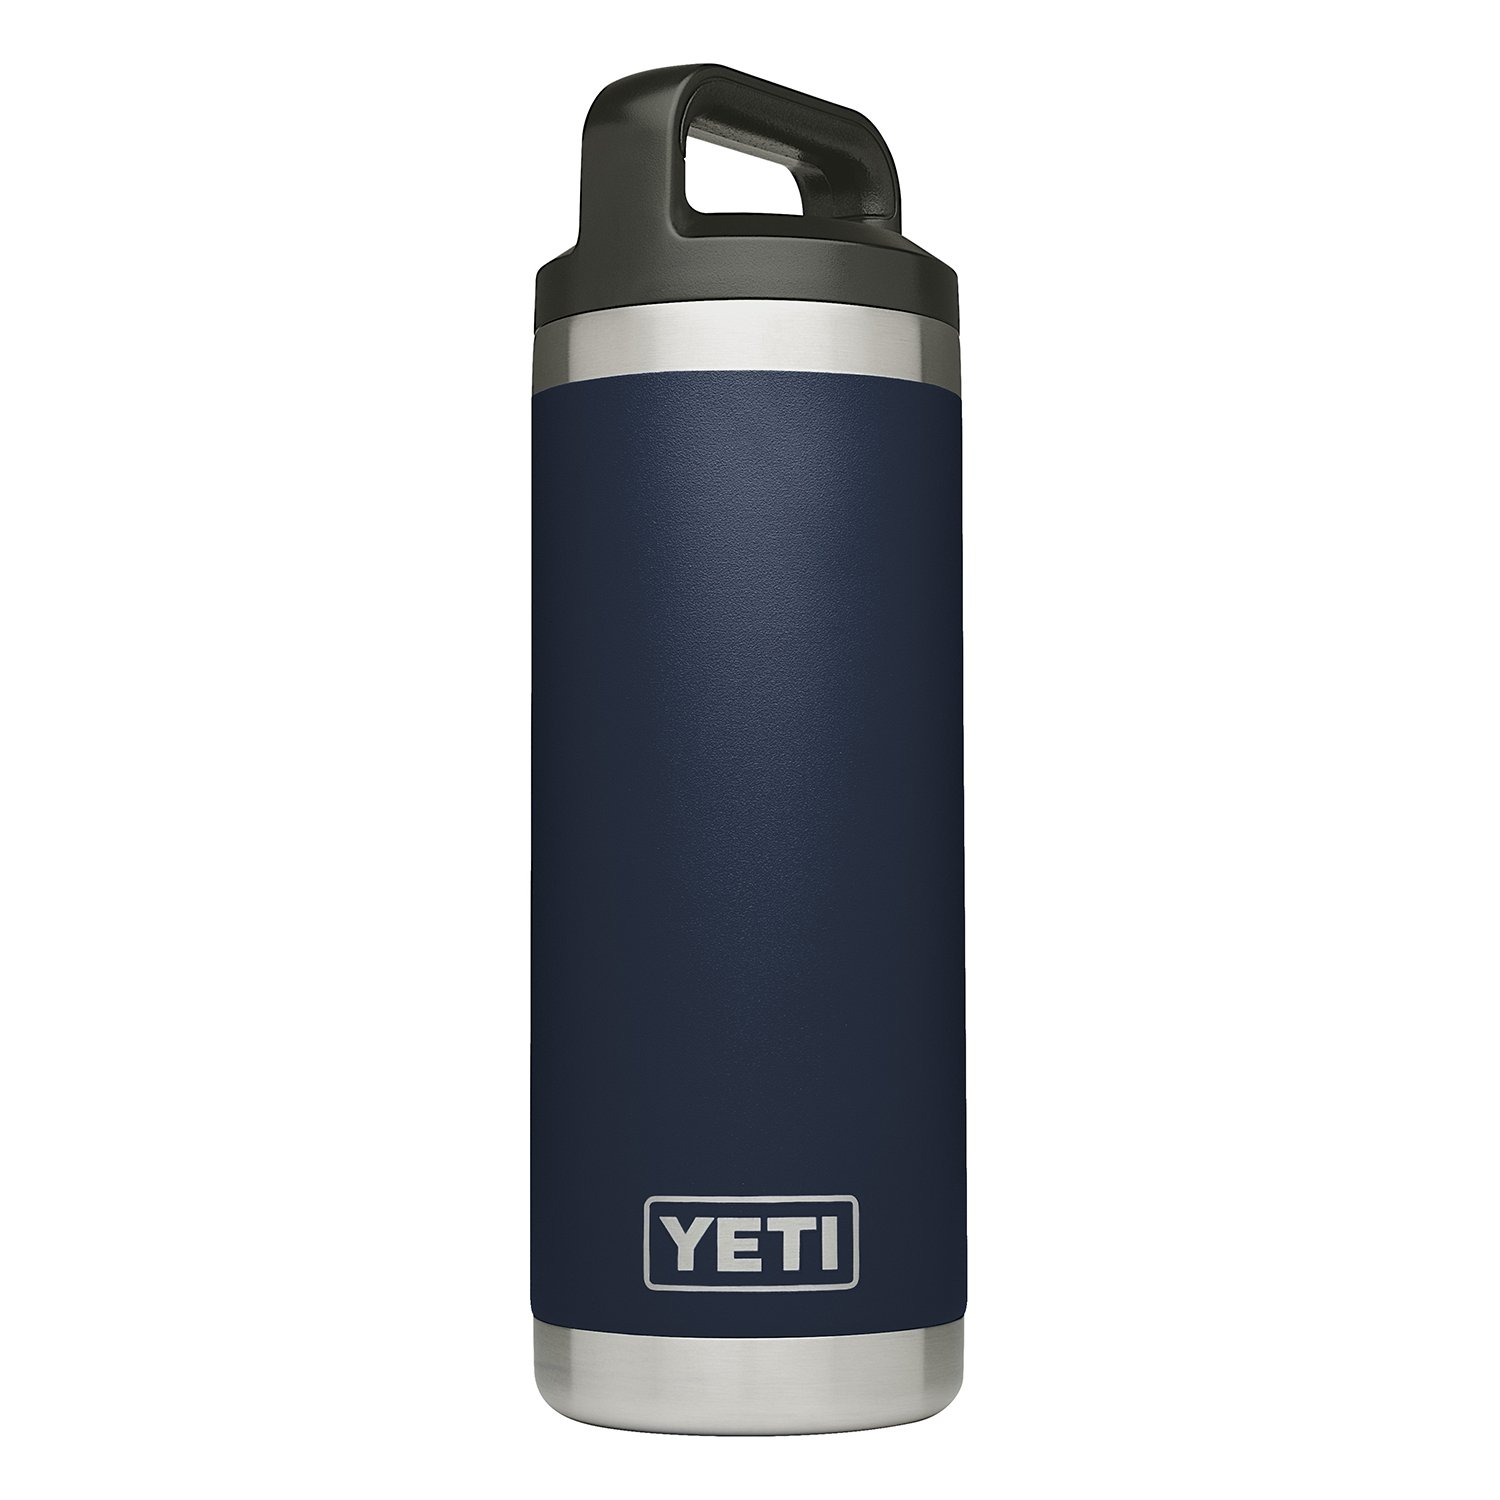 YETI Rambler 18 oz Stainless Steel Vacuum Insulated Bottle with Cap, Navy